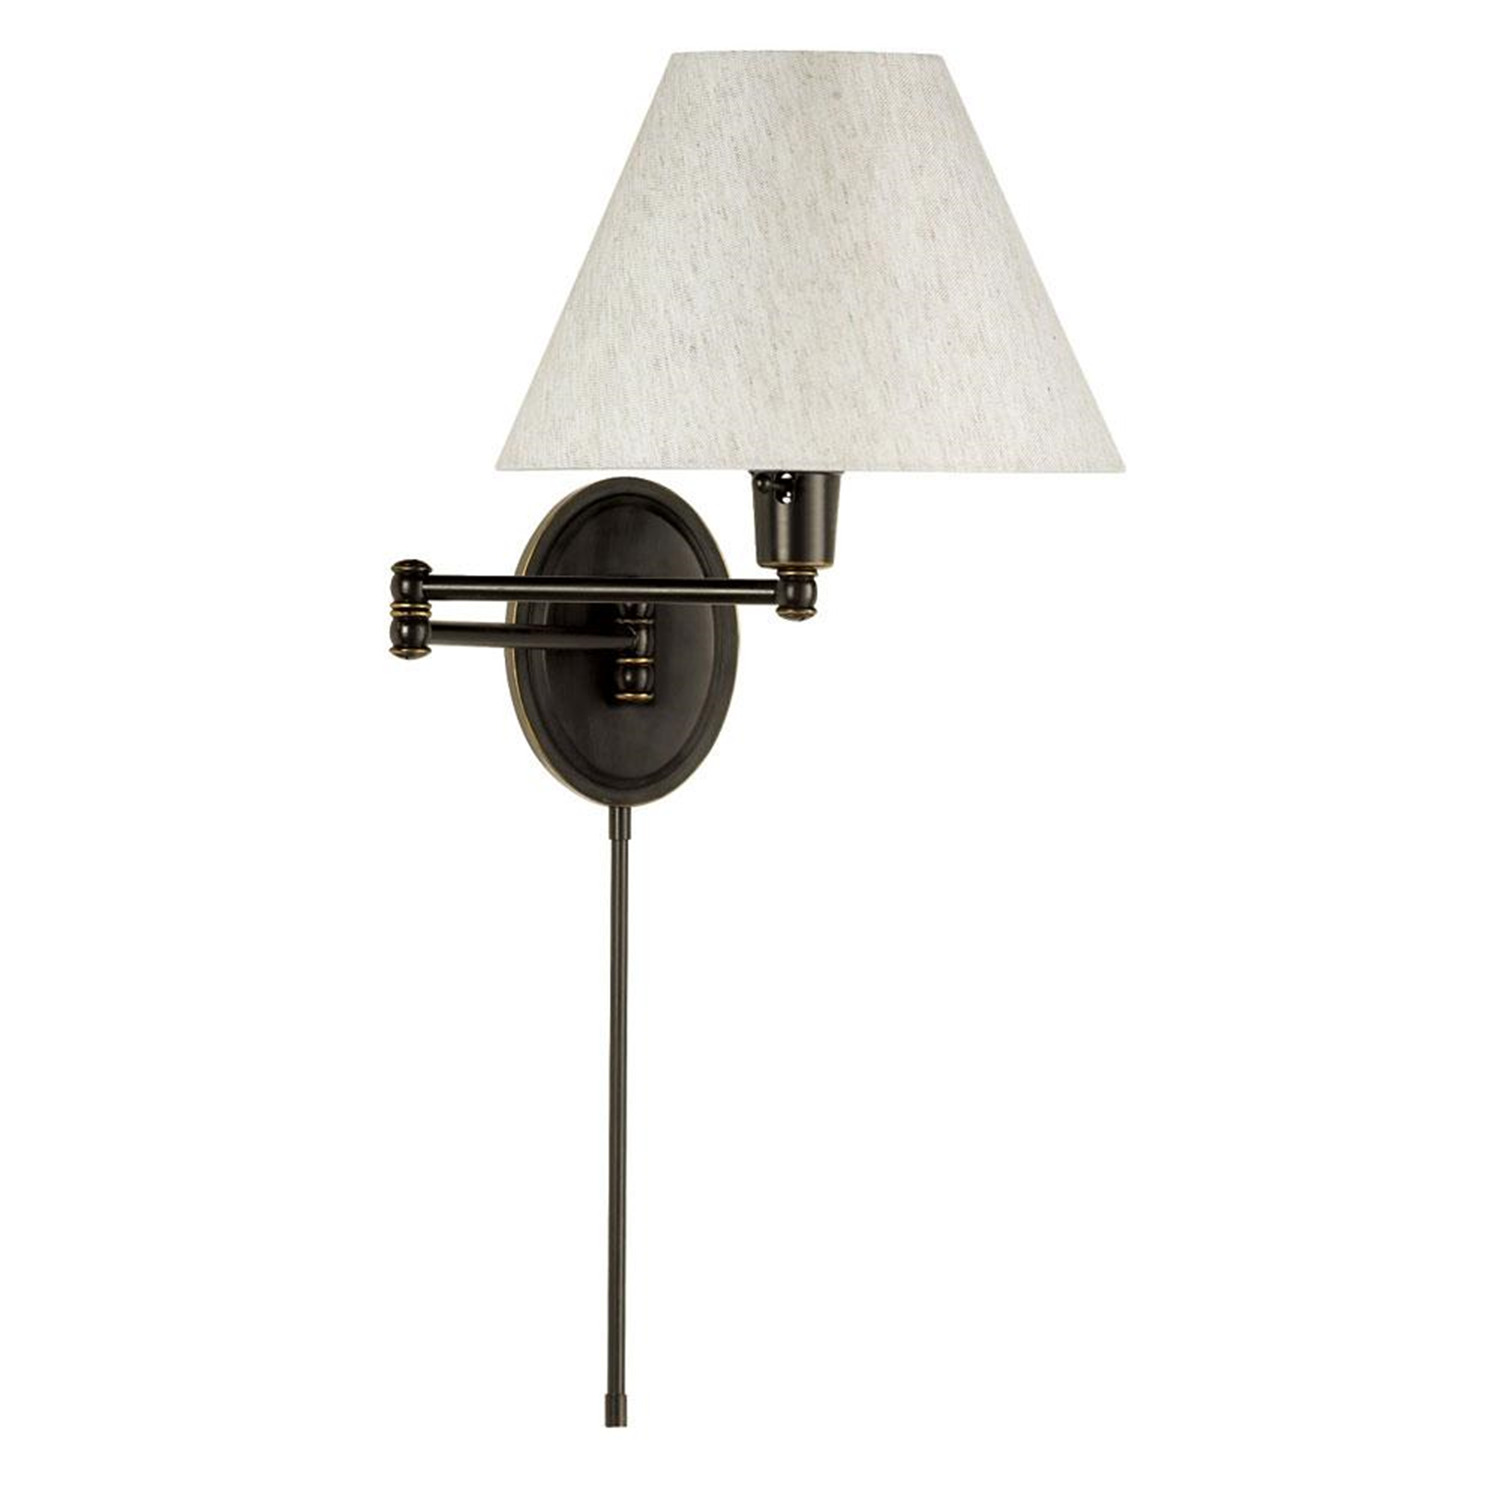 Wall Lamps : Dainolite Dual Swing-Arm Wall Lamp by OJ Commerce USD 174.00